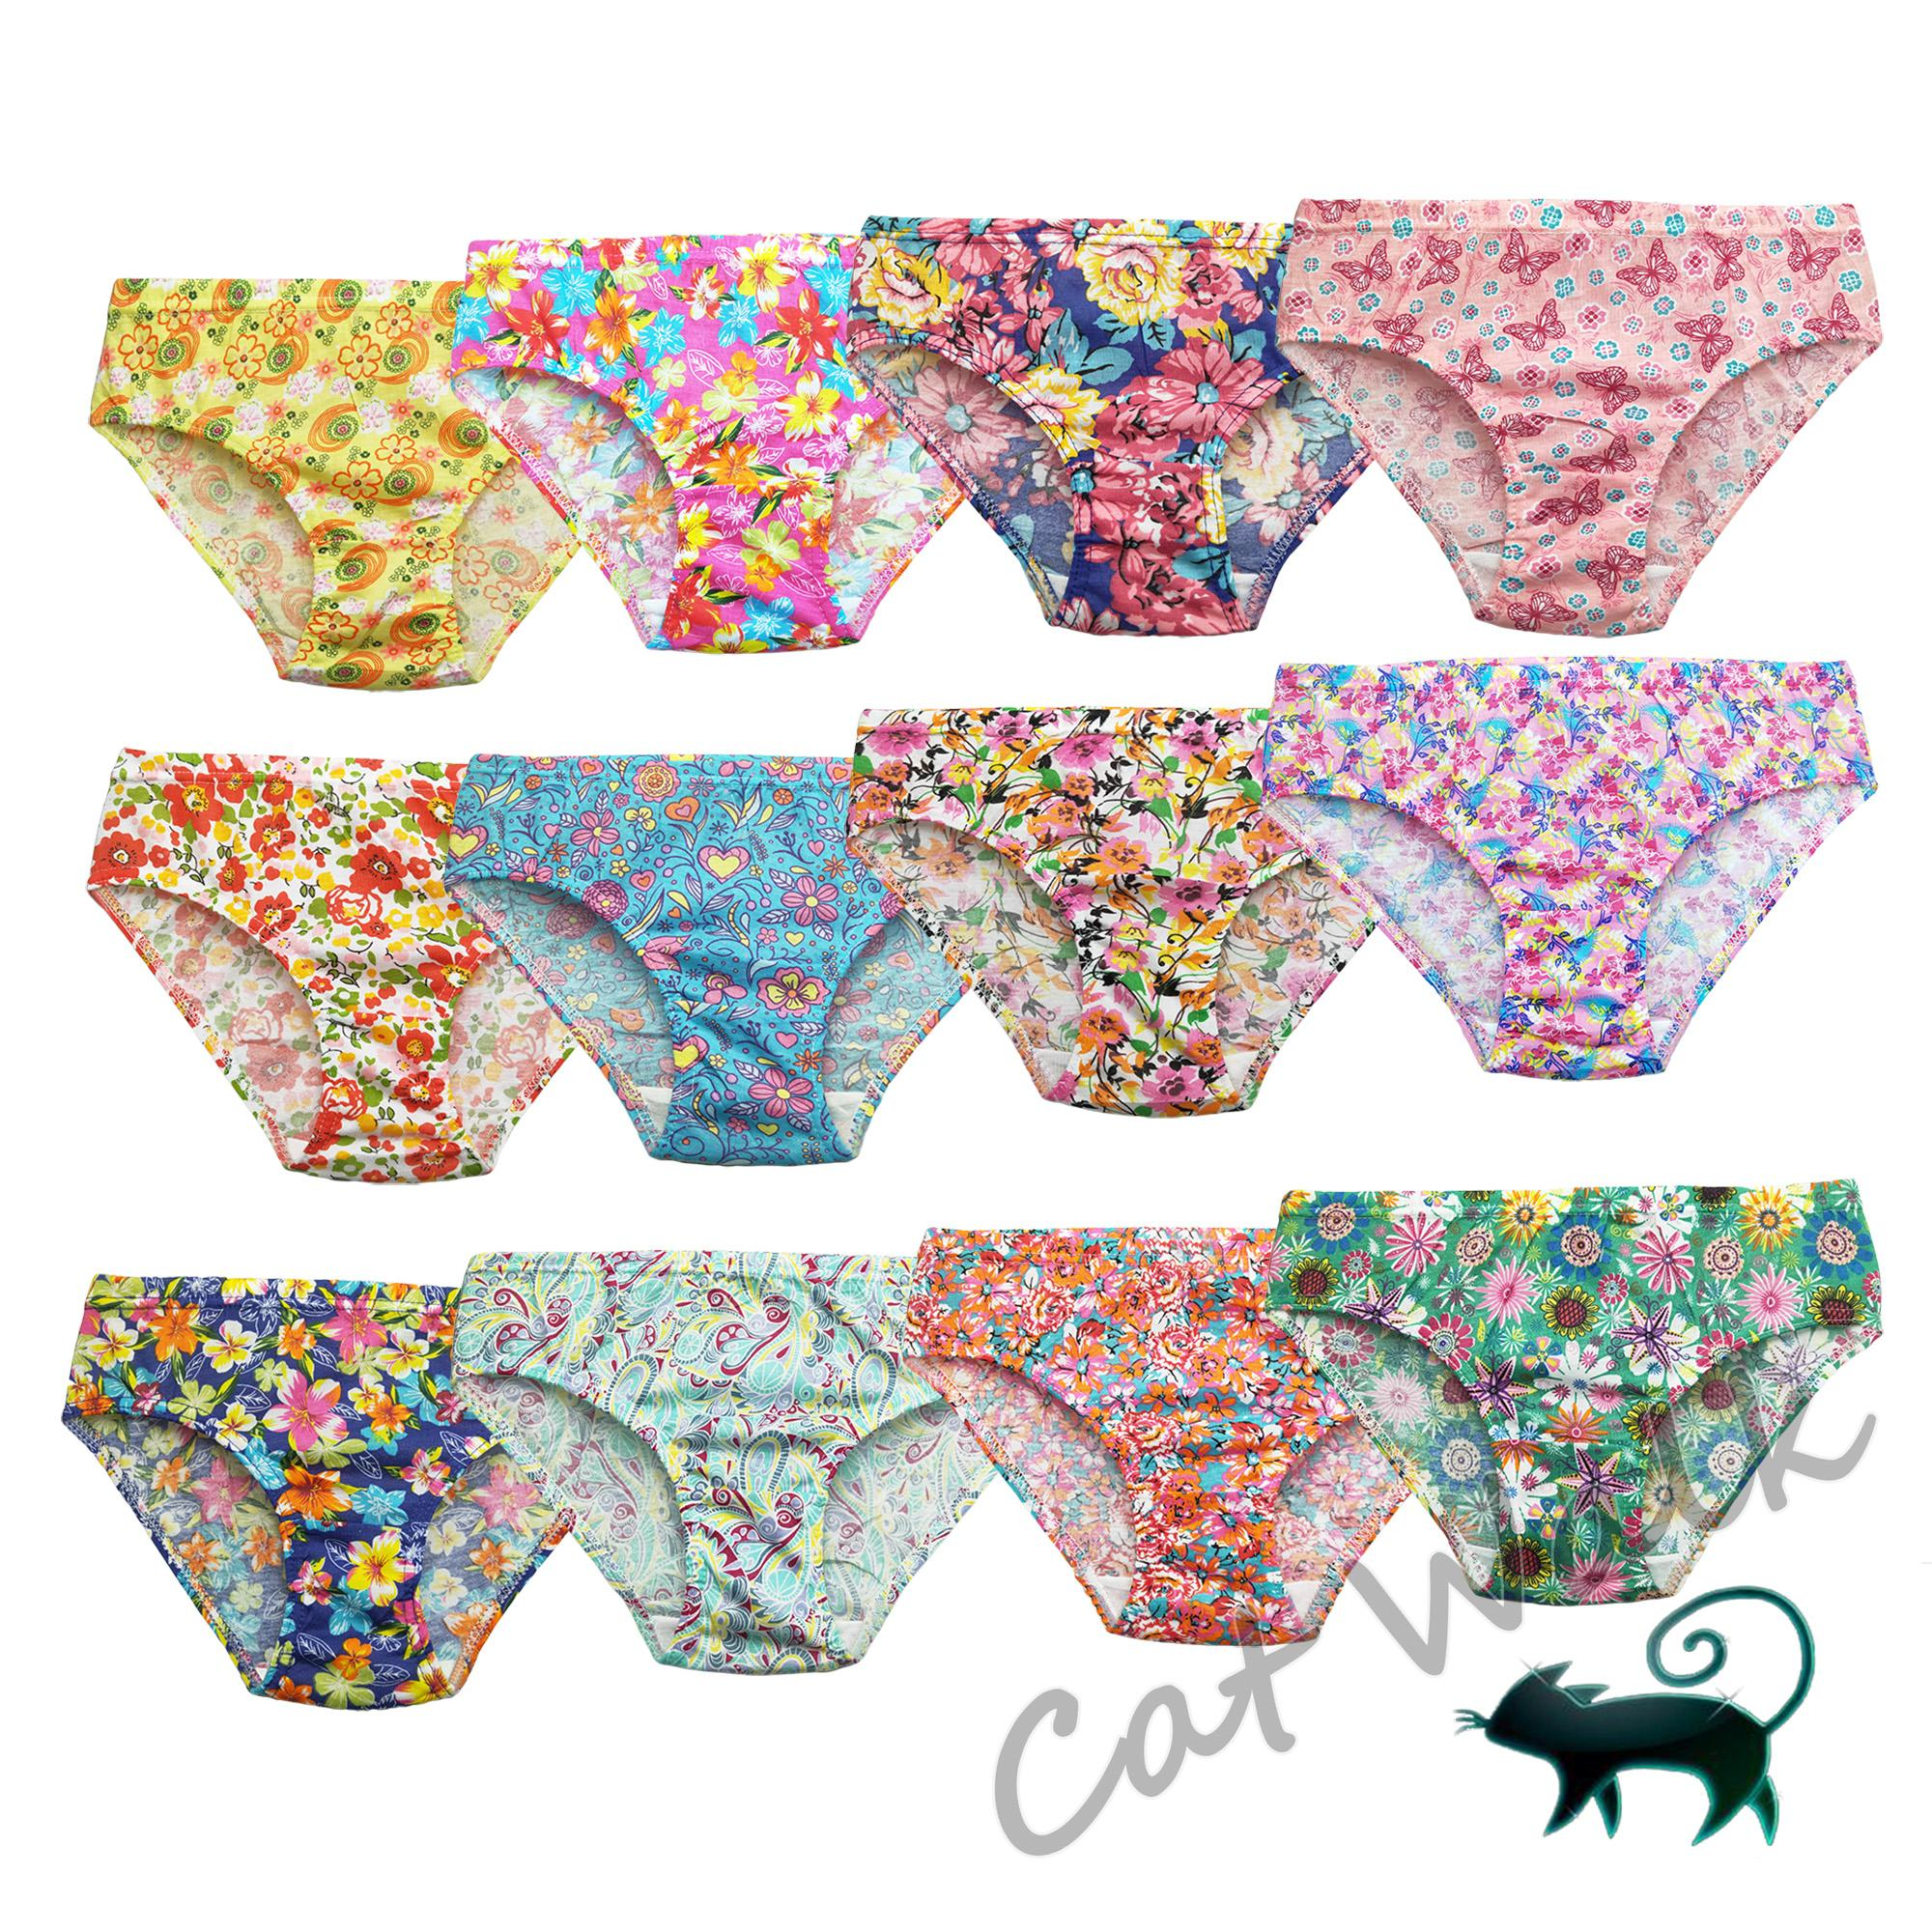 f0e3197b8f3f Panties for Women for sale - Womens Panties Online Deals & Prices in ...